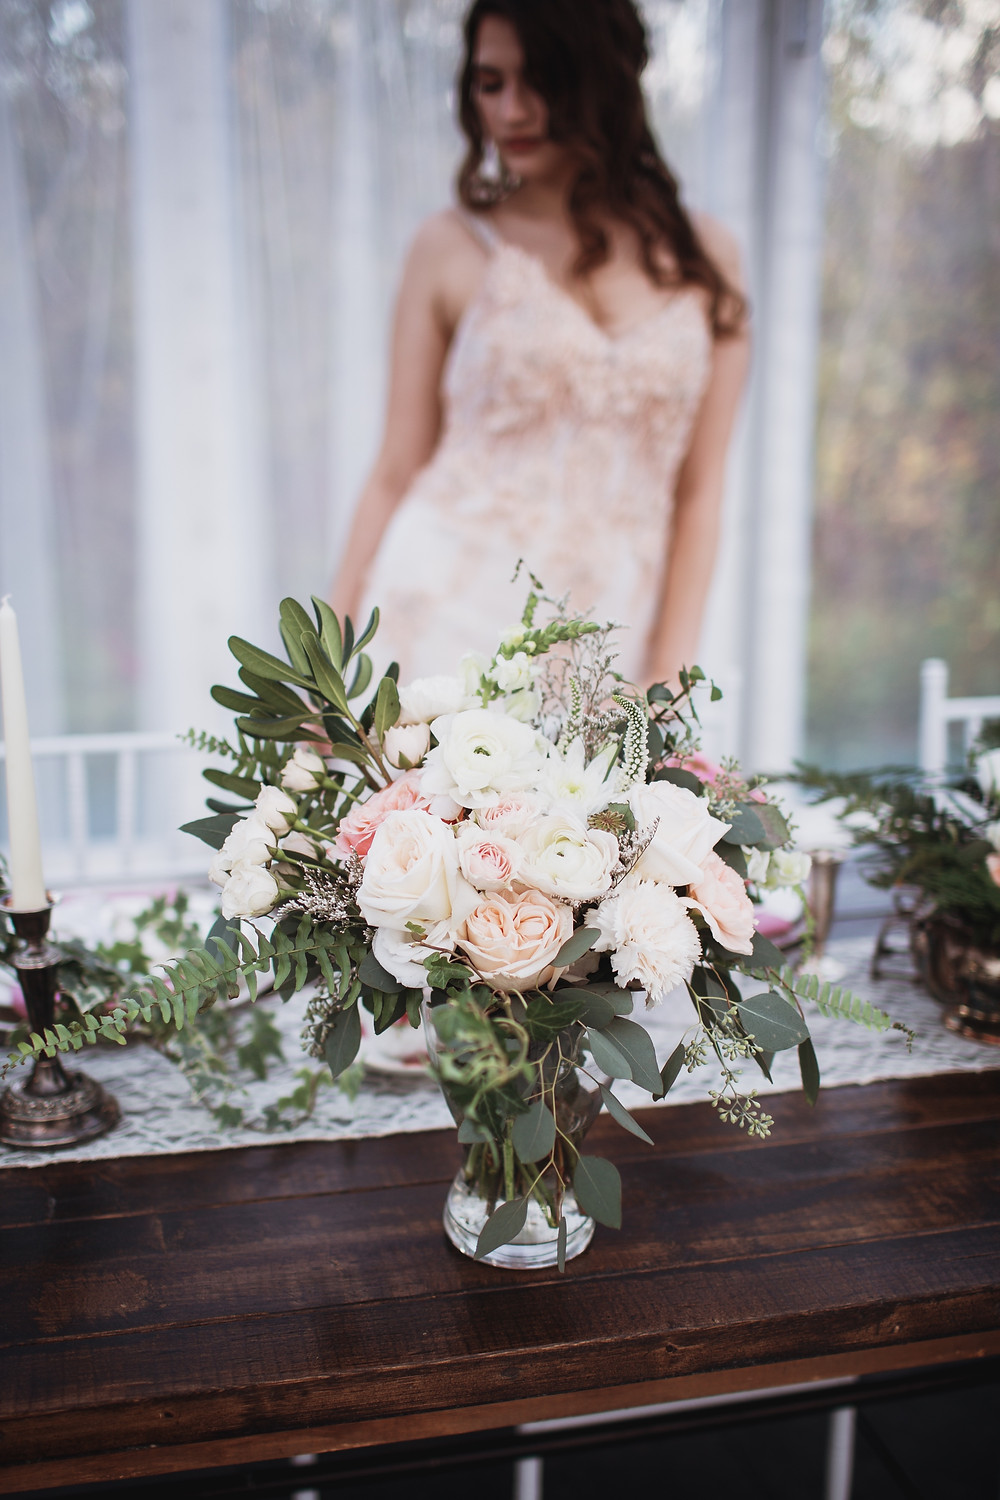 Fall bridal bouquet, in blush and white florals with hearty greens